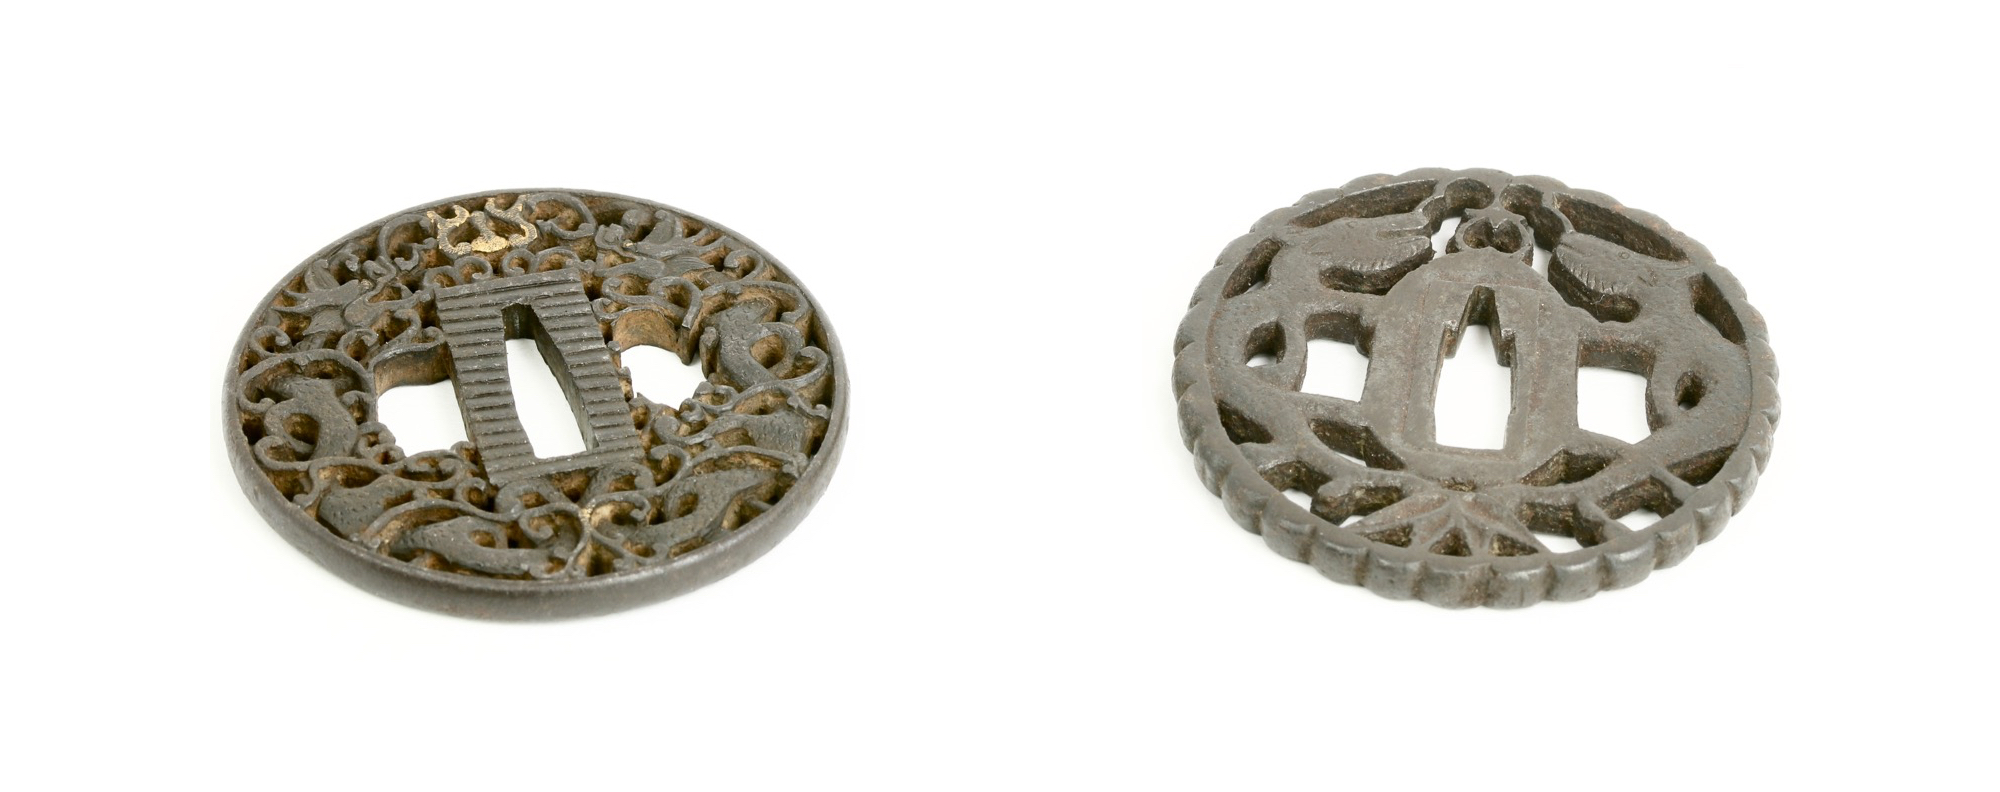 Three Japanese tsuba's with Chinese influence.